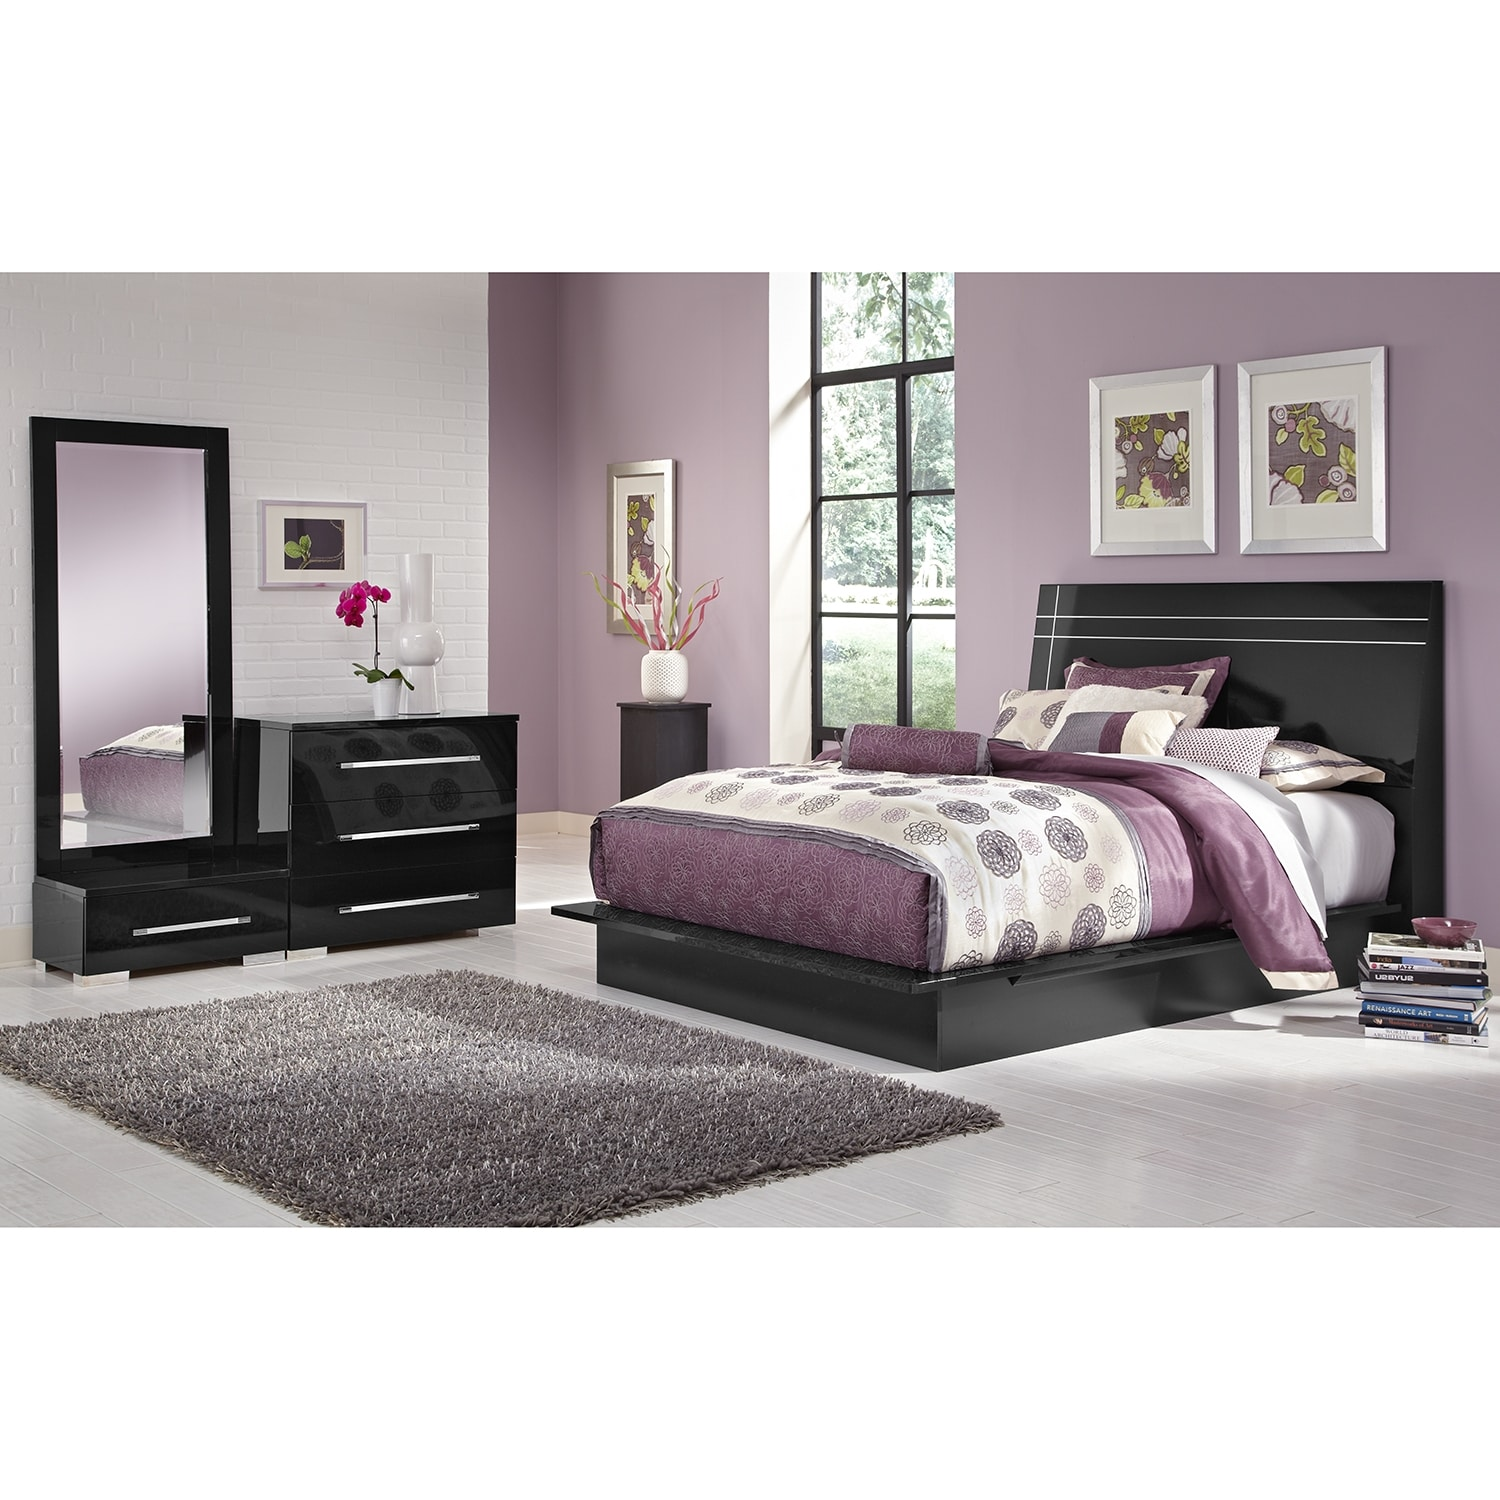 dimora bedroom set. click to change image. dimora bedroom set